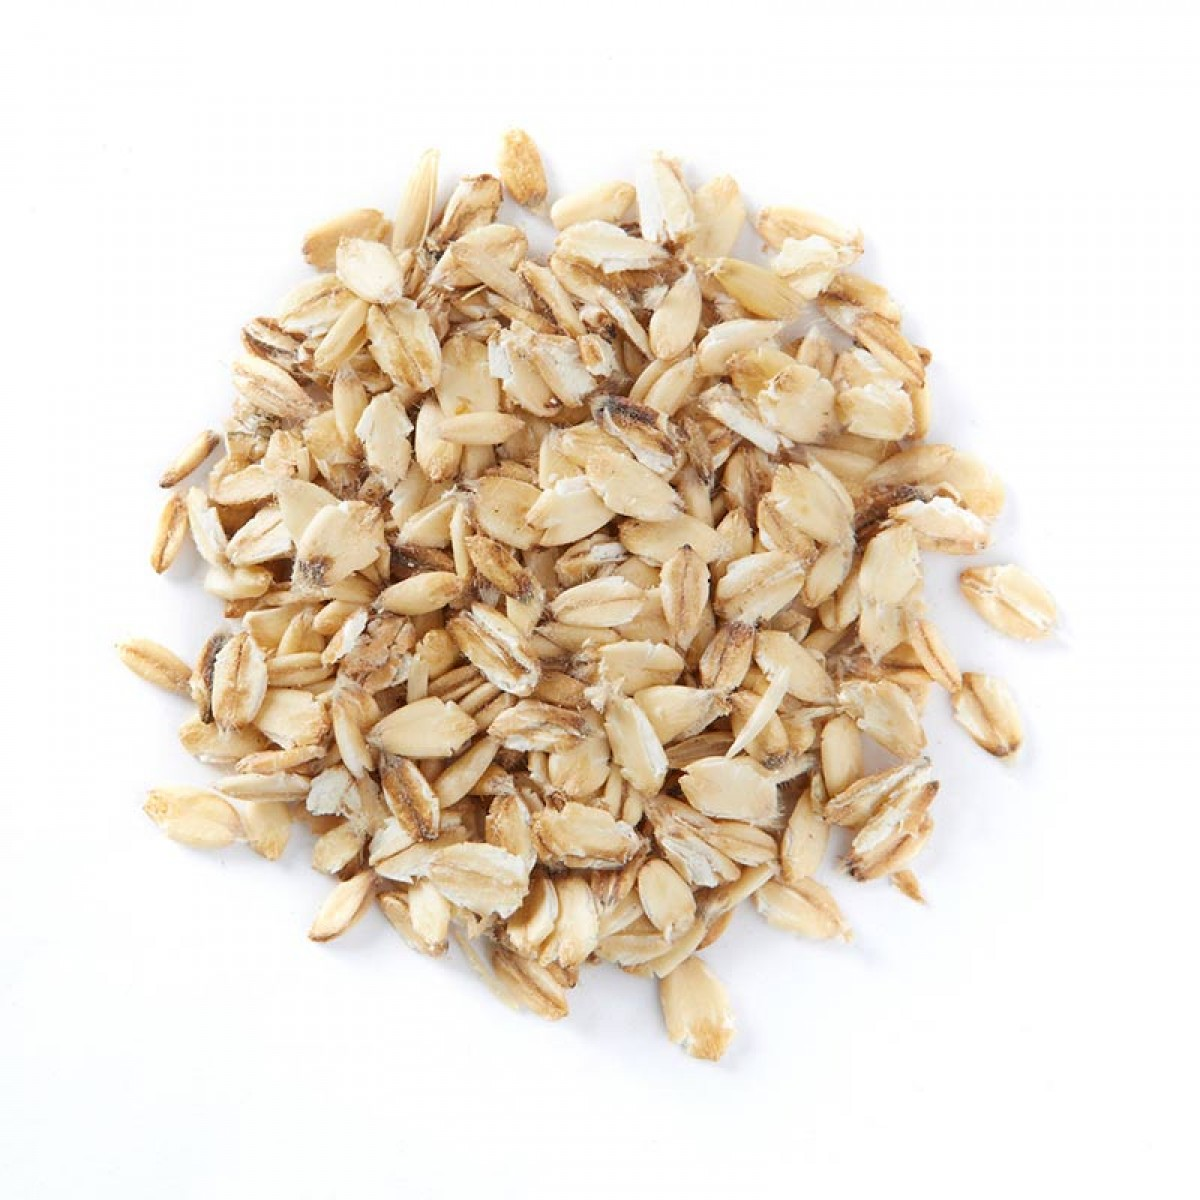 Uncooked Oats Cereals 722.18 Kb